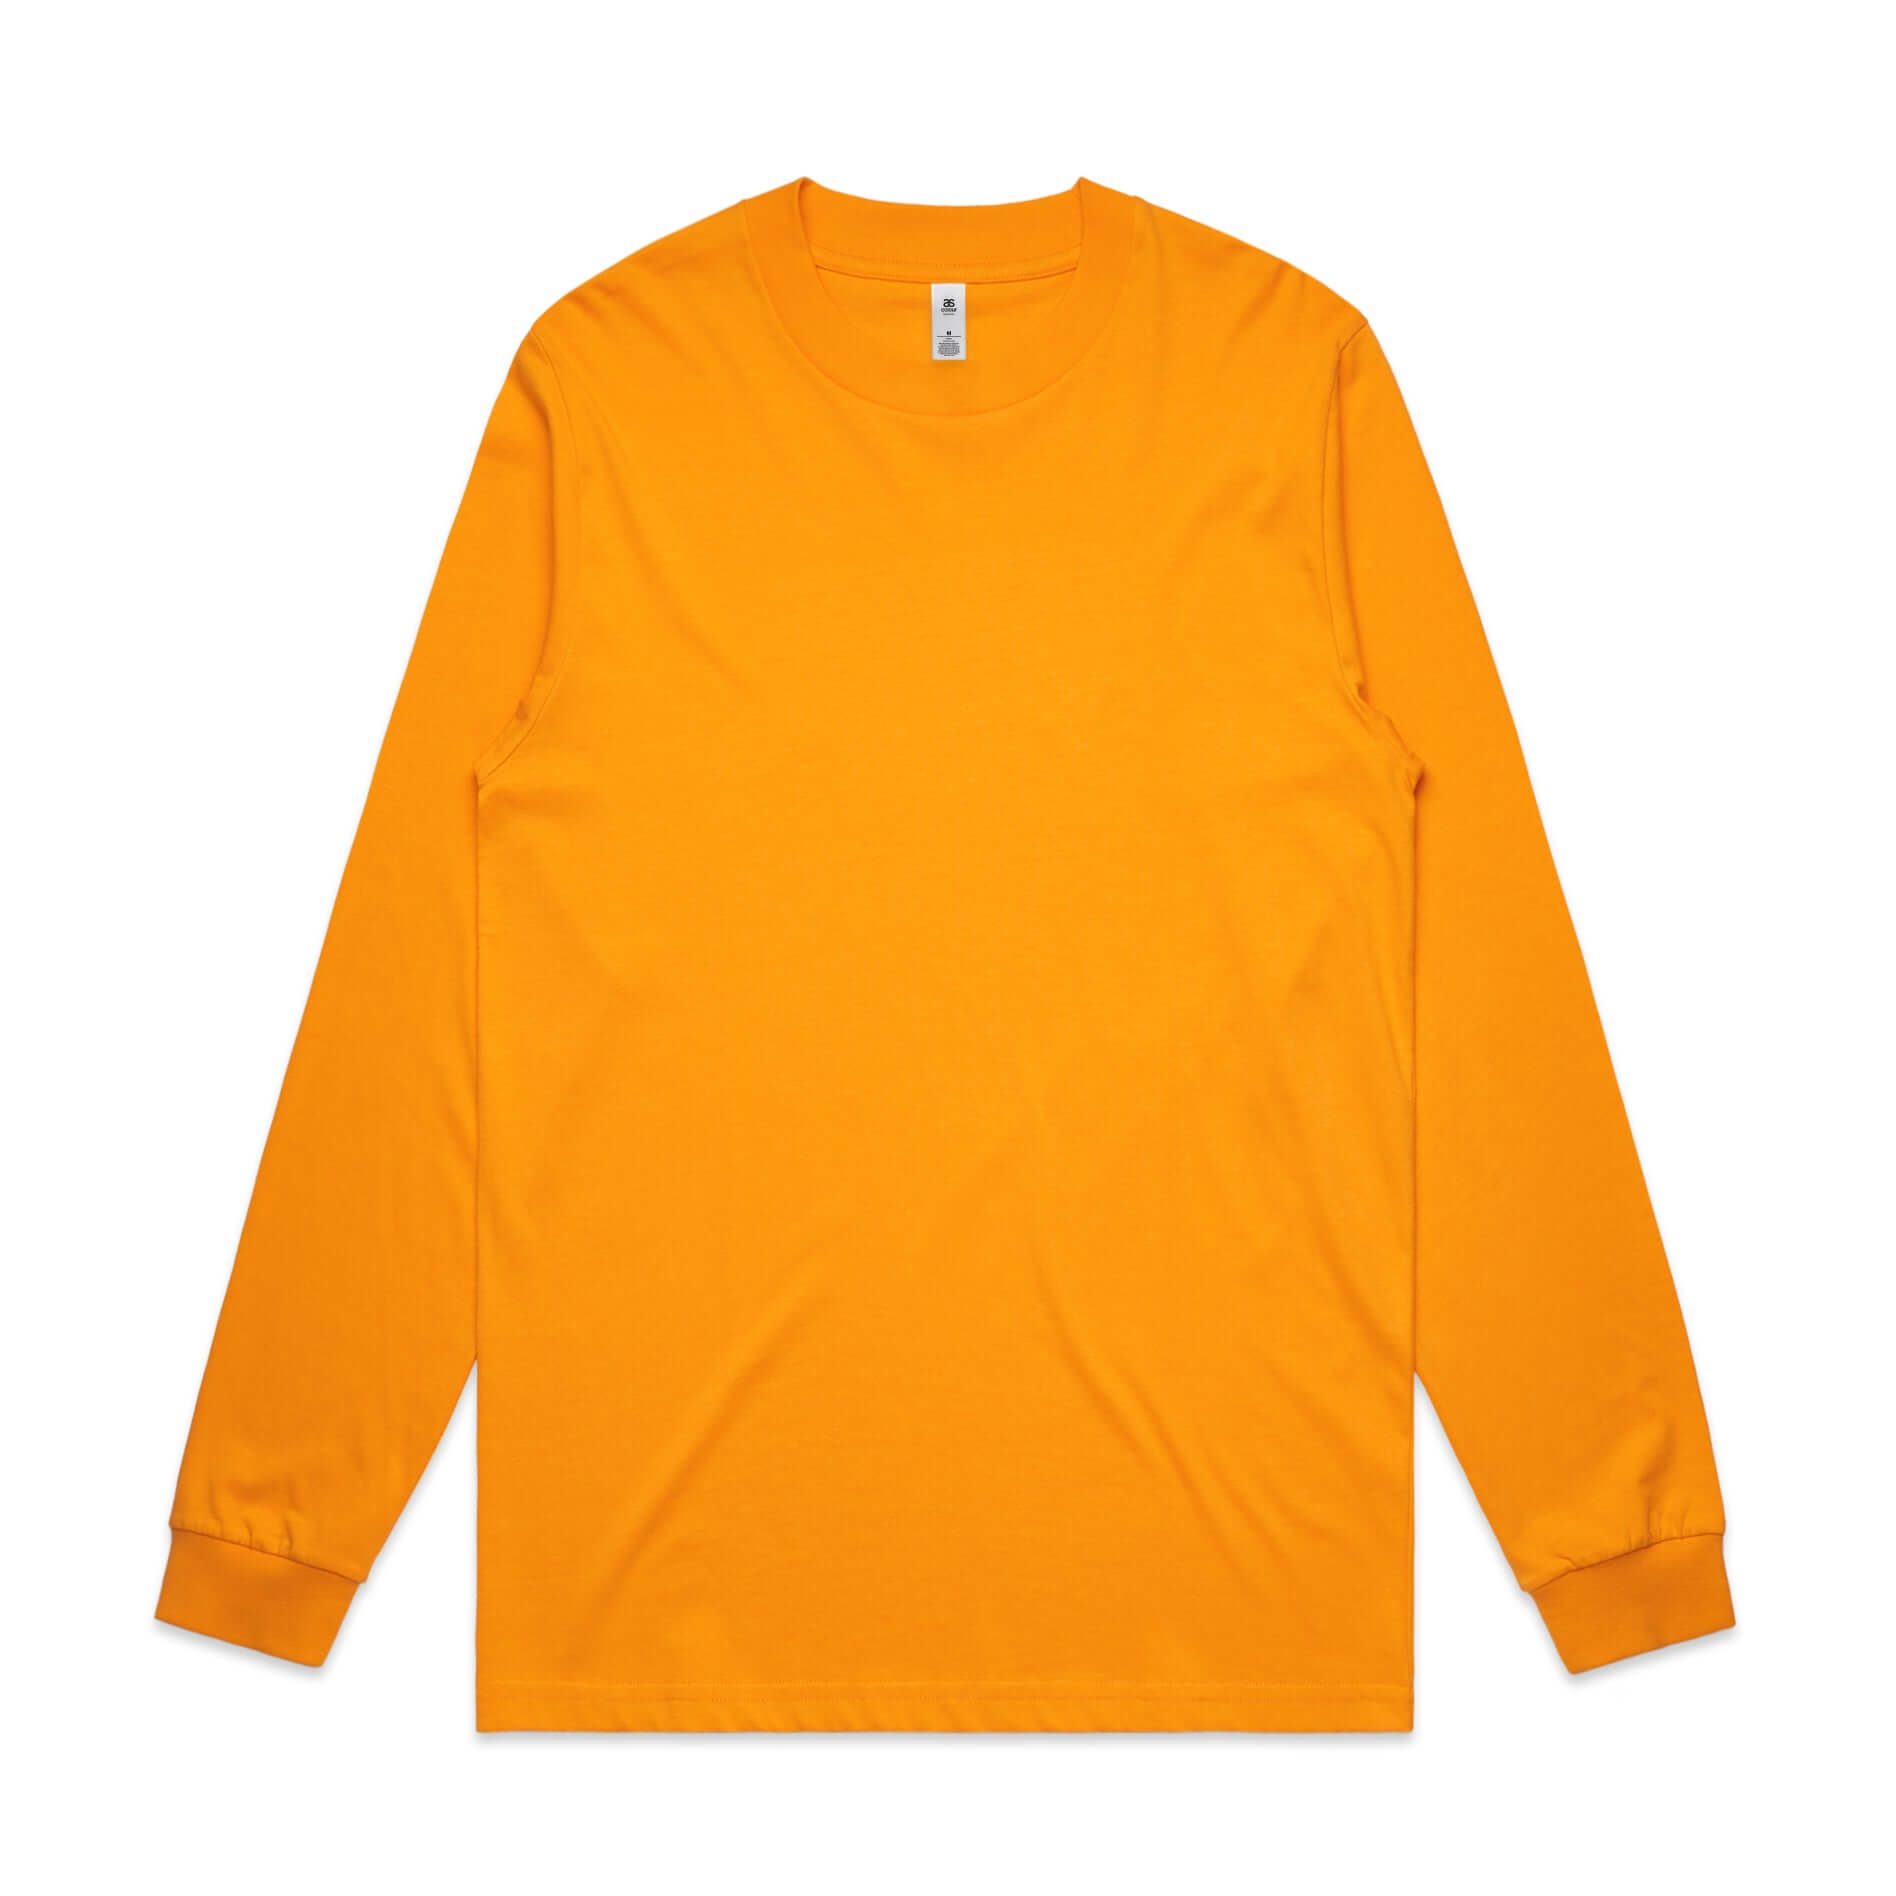 AS Colour GENERAL L/S TEE - Yellow